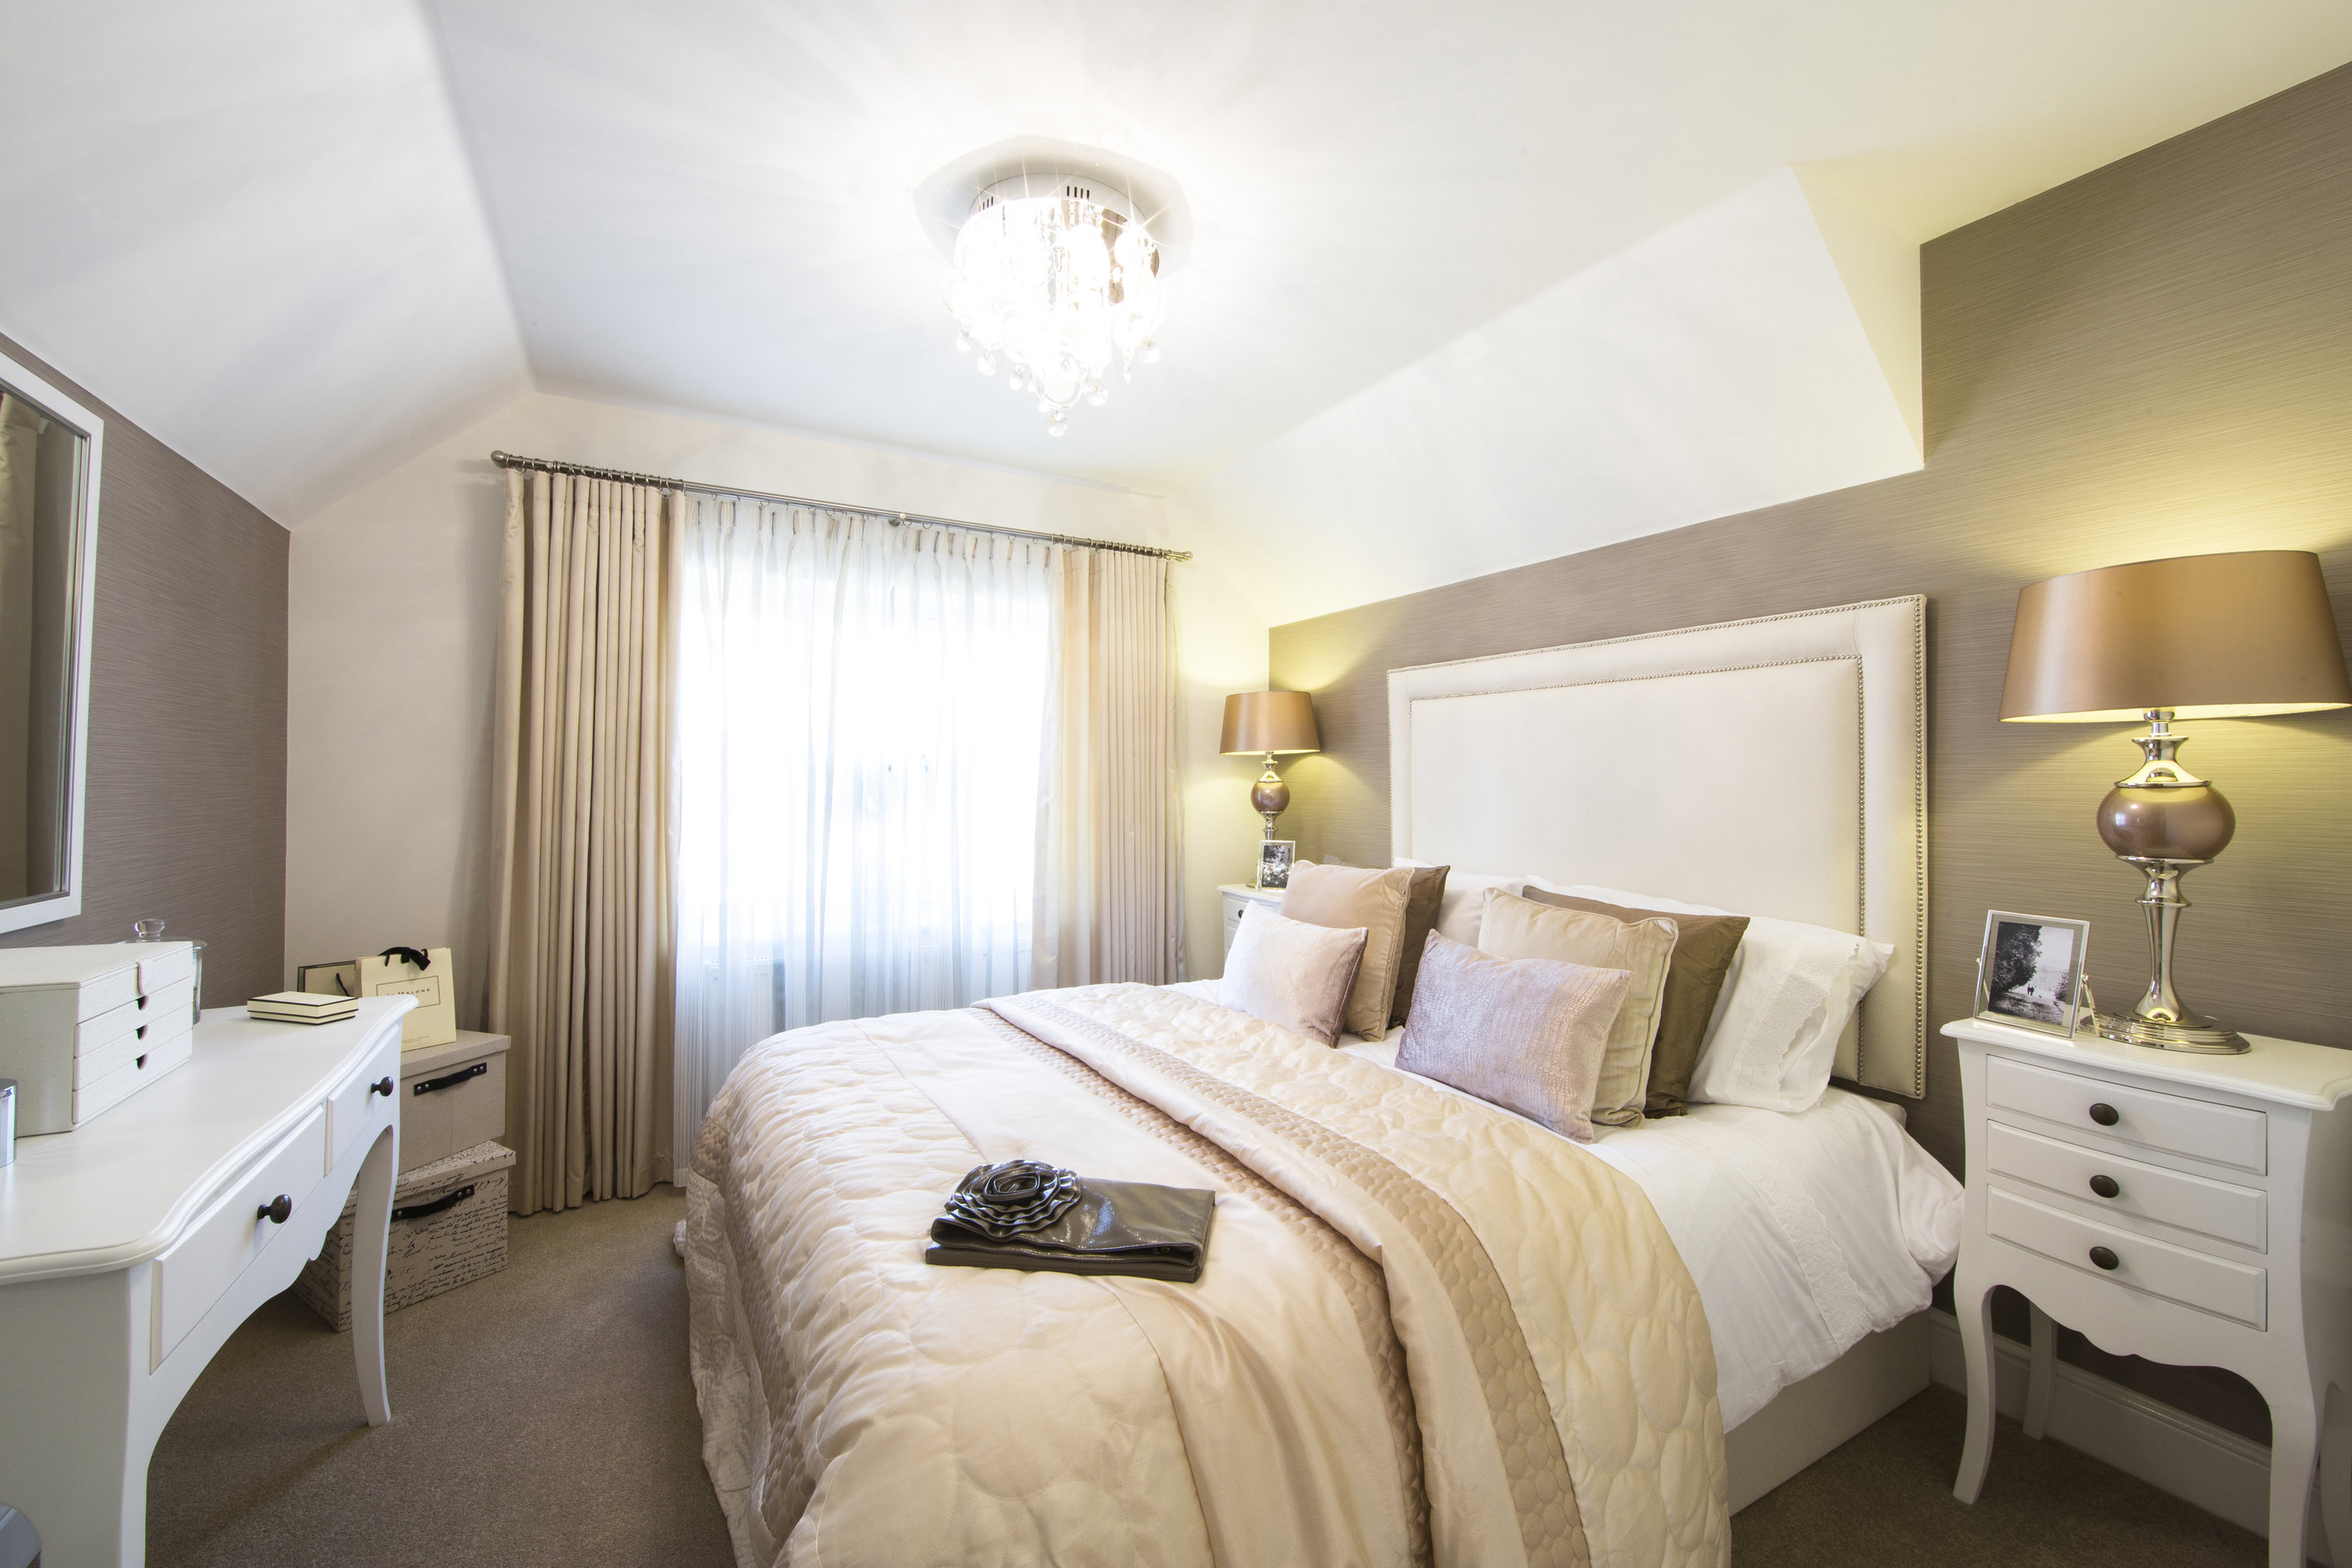 Show Home Bedroom Last Few Properties At Exmouth Development The Exeter Daily